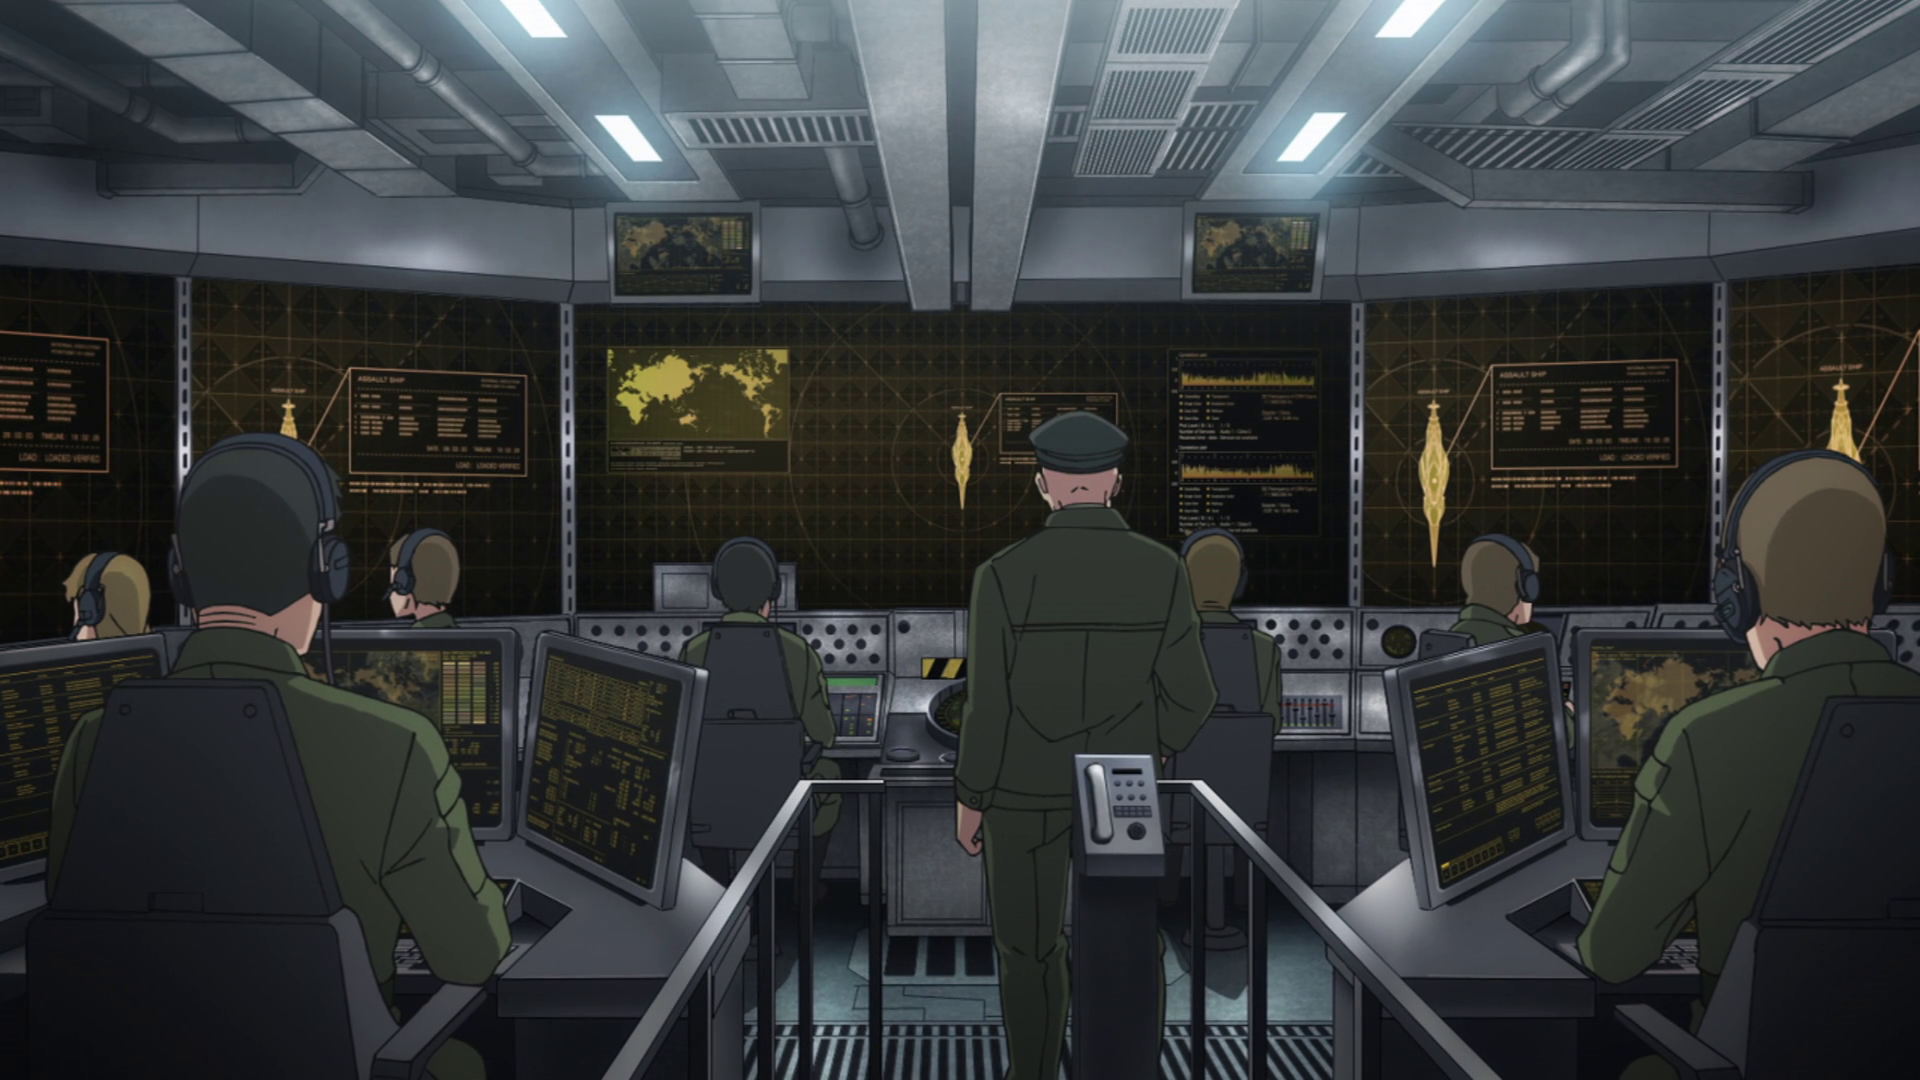 United Forces of Earth Headquarters